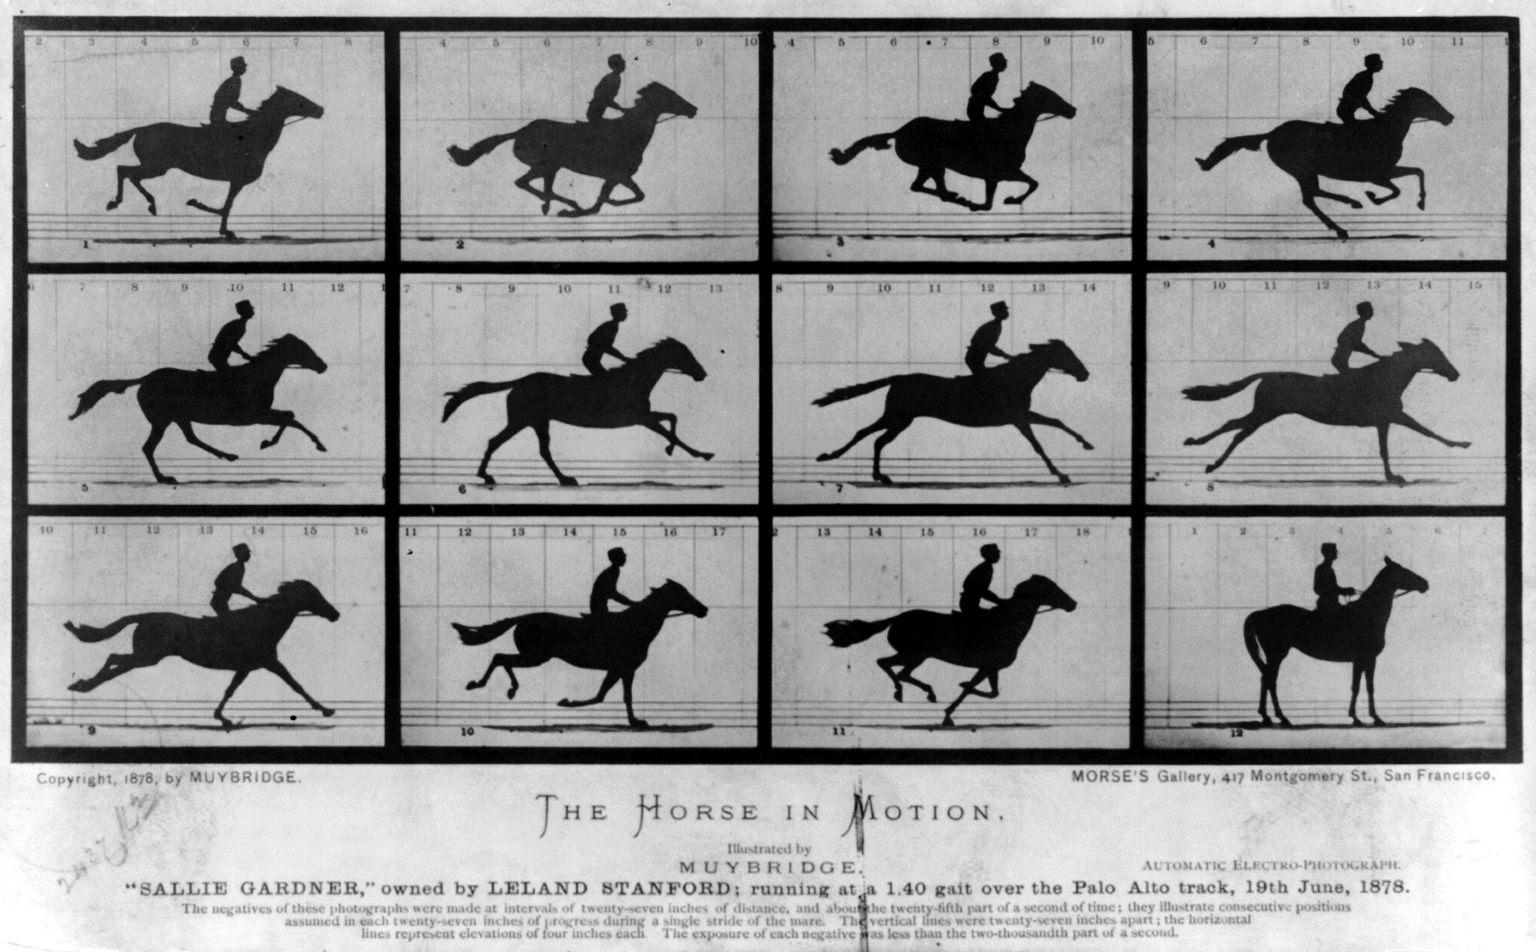 The_Horse_in_Motion.jpg